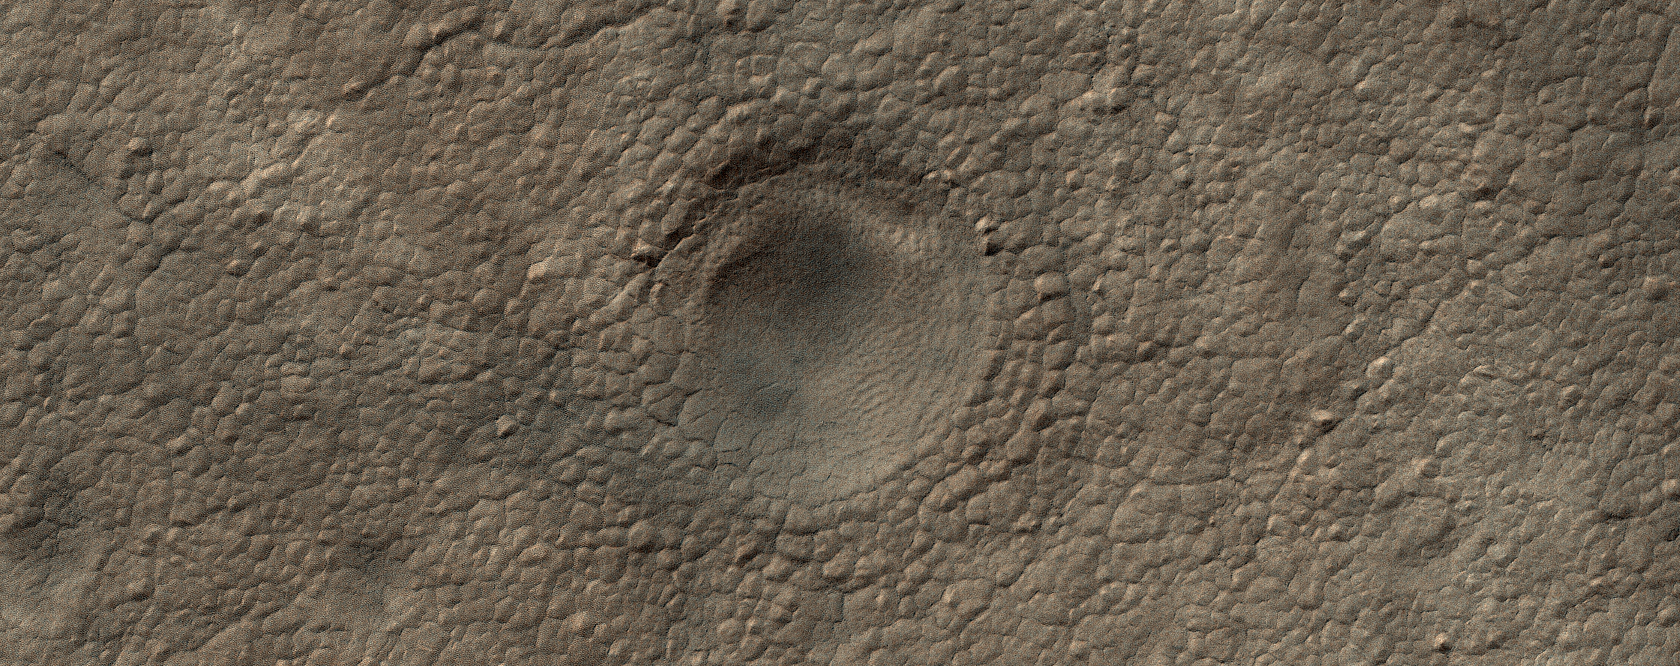 A Crater on the South Polar Layered Deposits